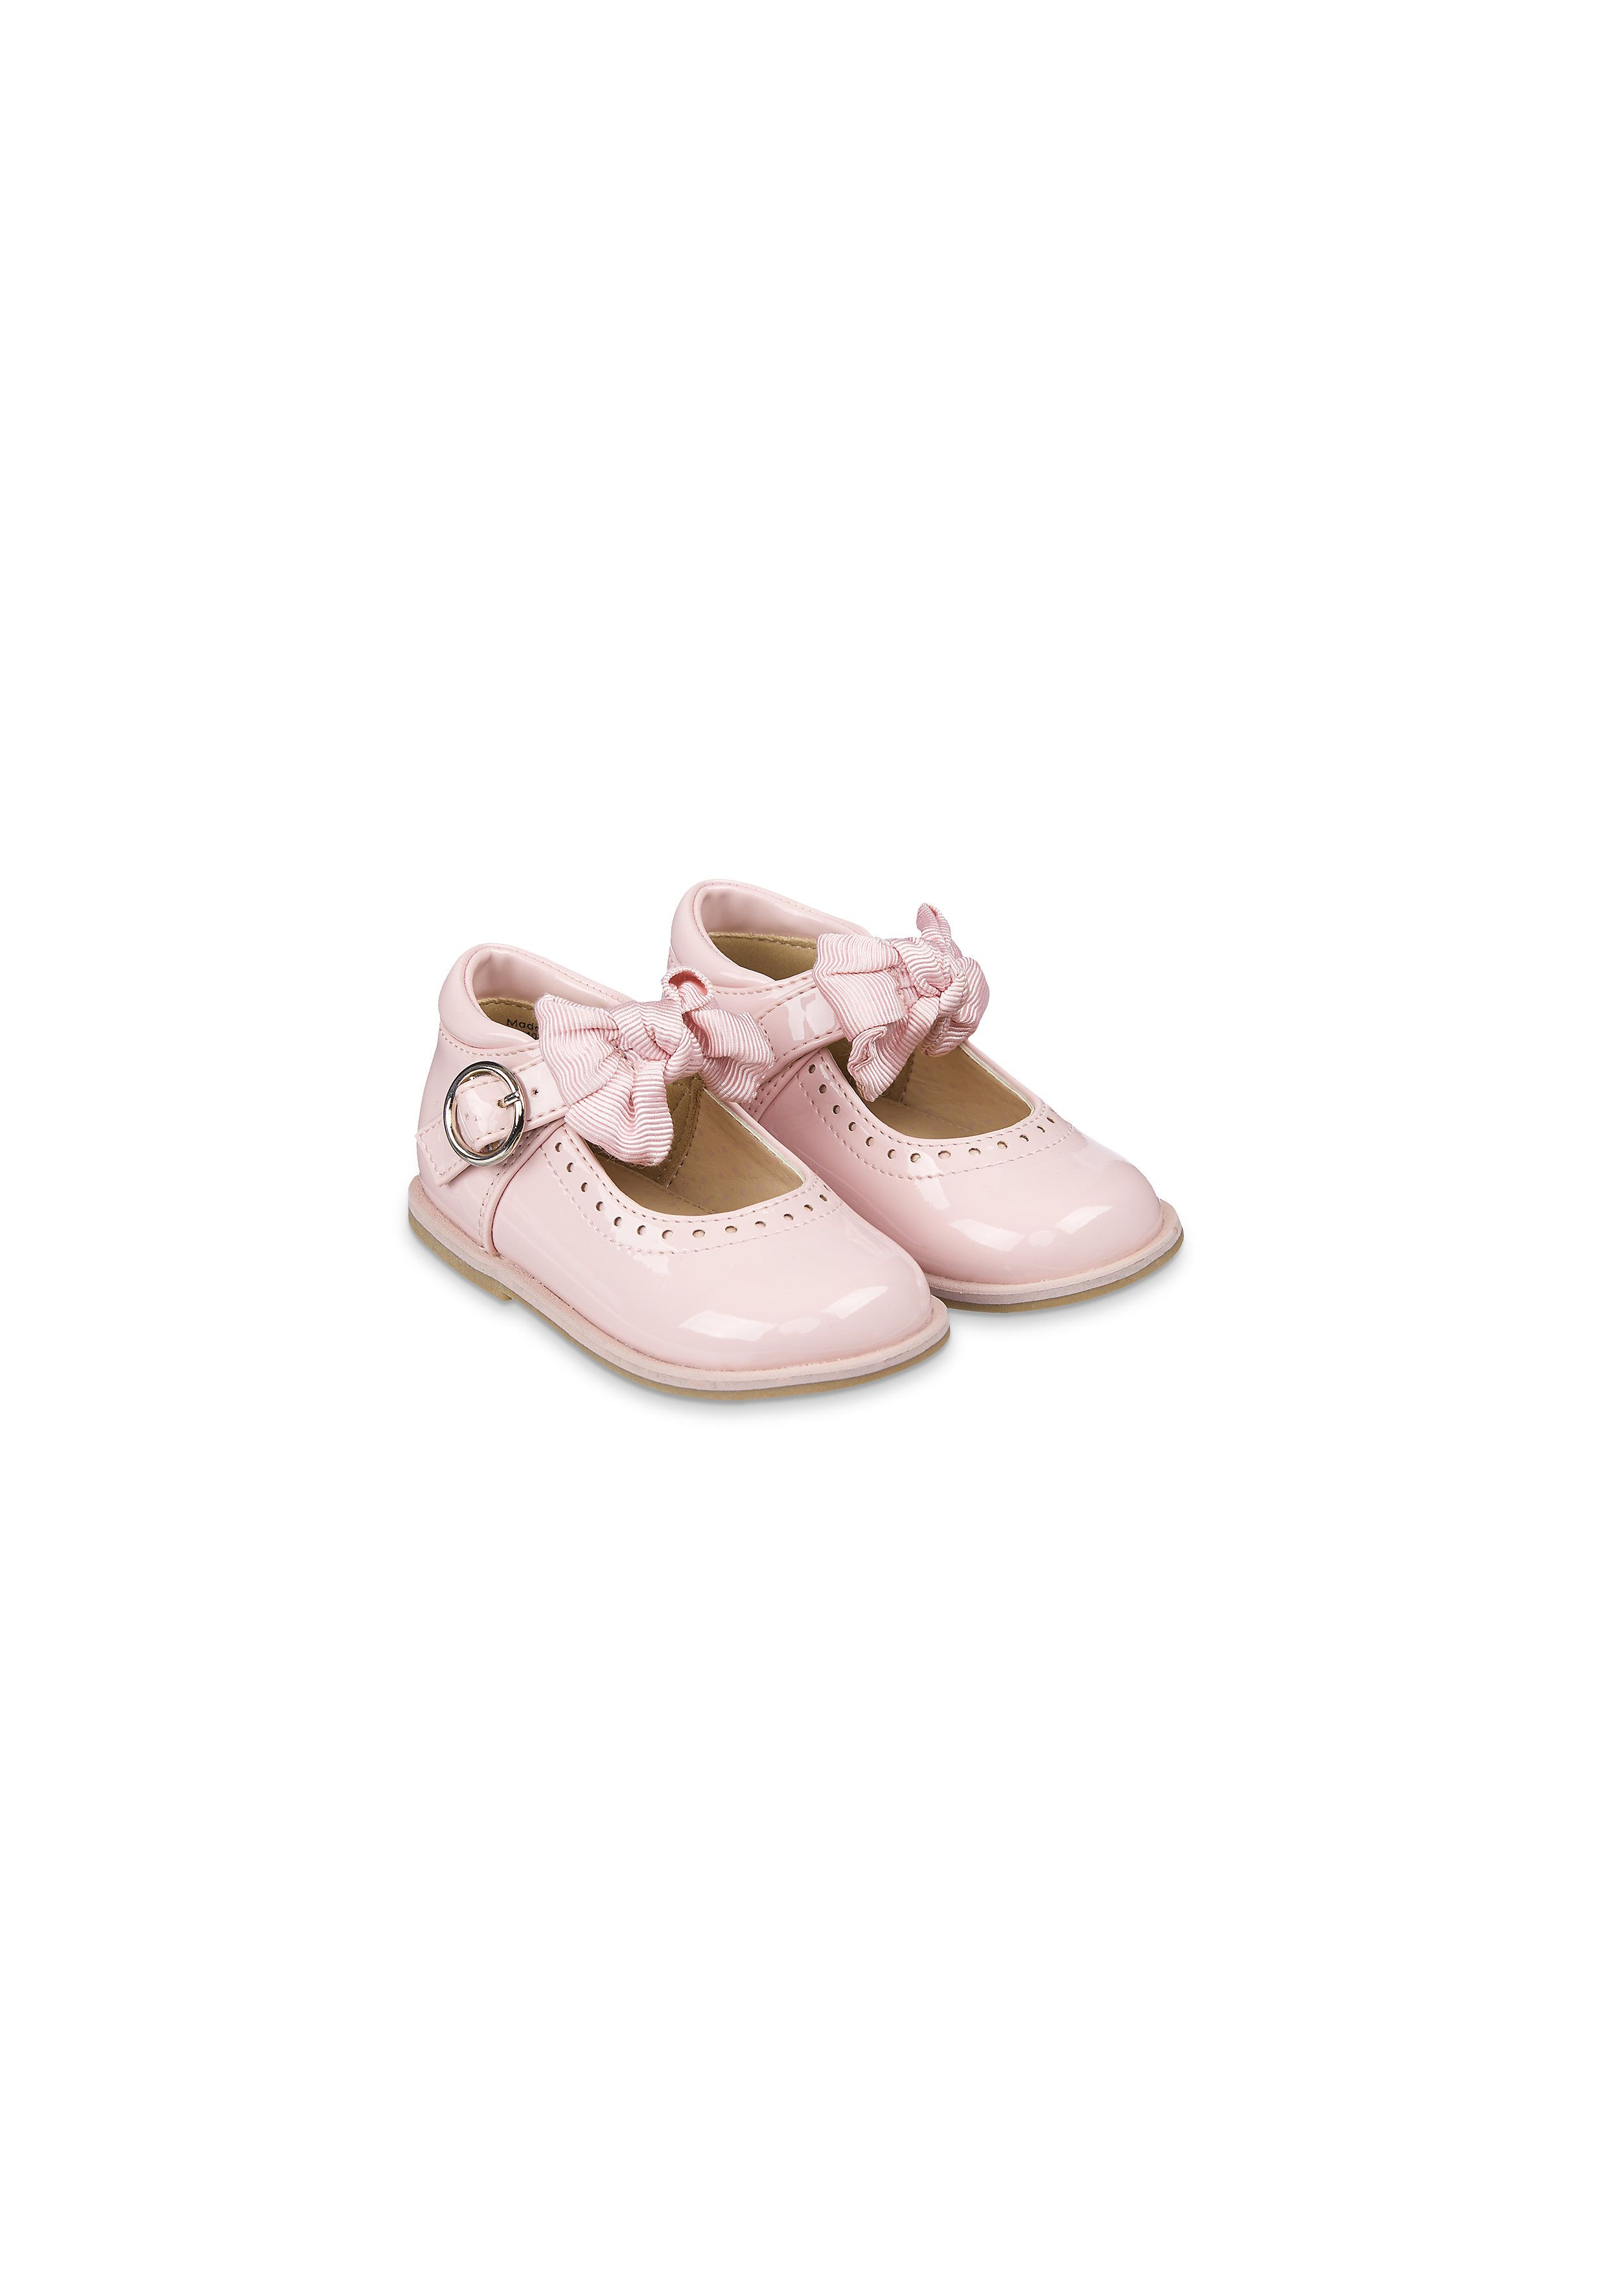 Mothercare | Girls Pink Patent Shoes - Pink